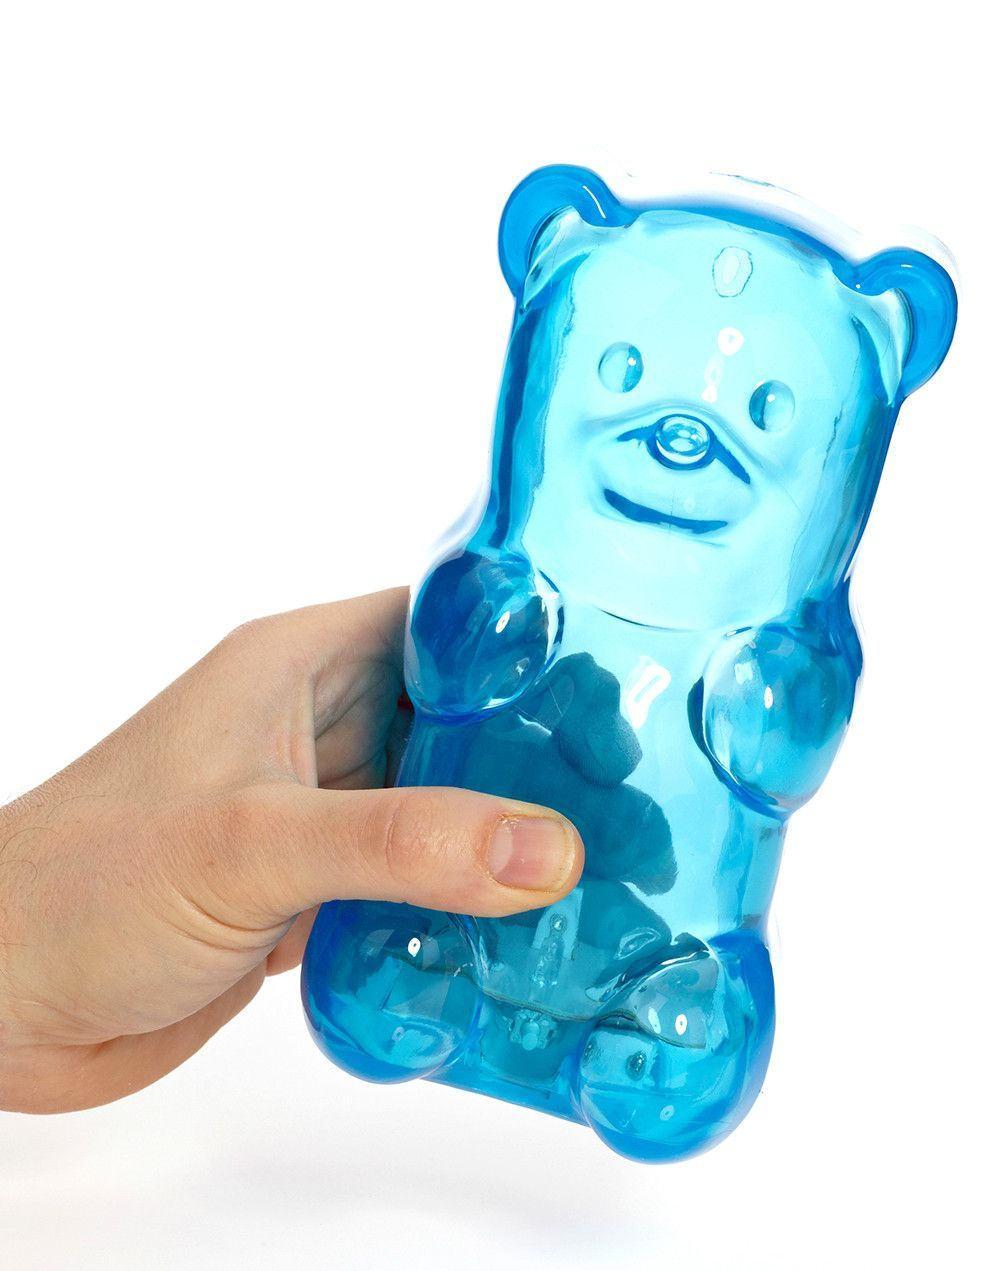 A squeezable gummy bear nightlight this is our best seller a squeezable gummy bear nightlight this is our best seller arubaitofo Image collections